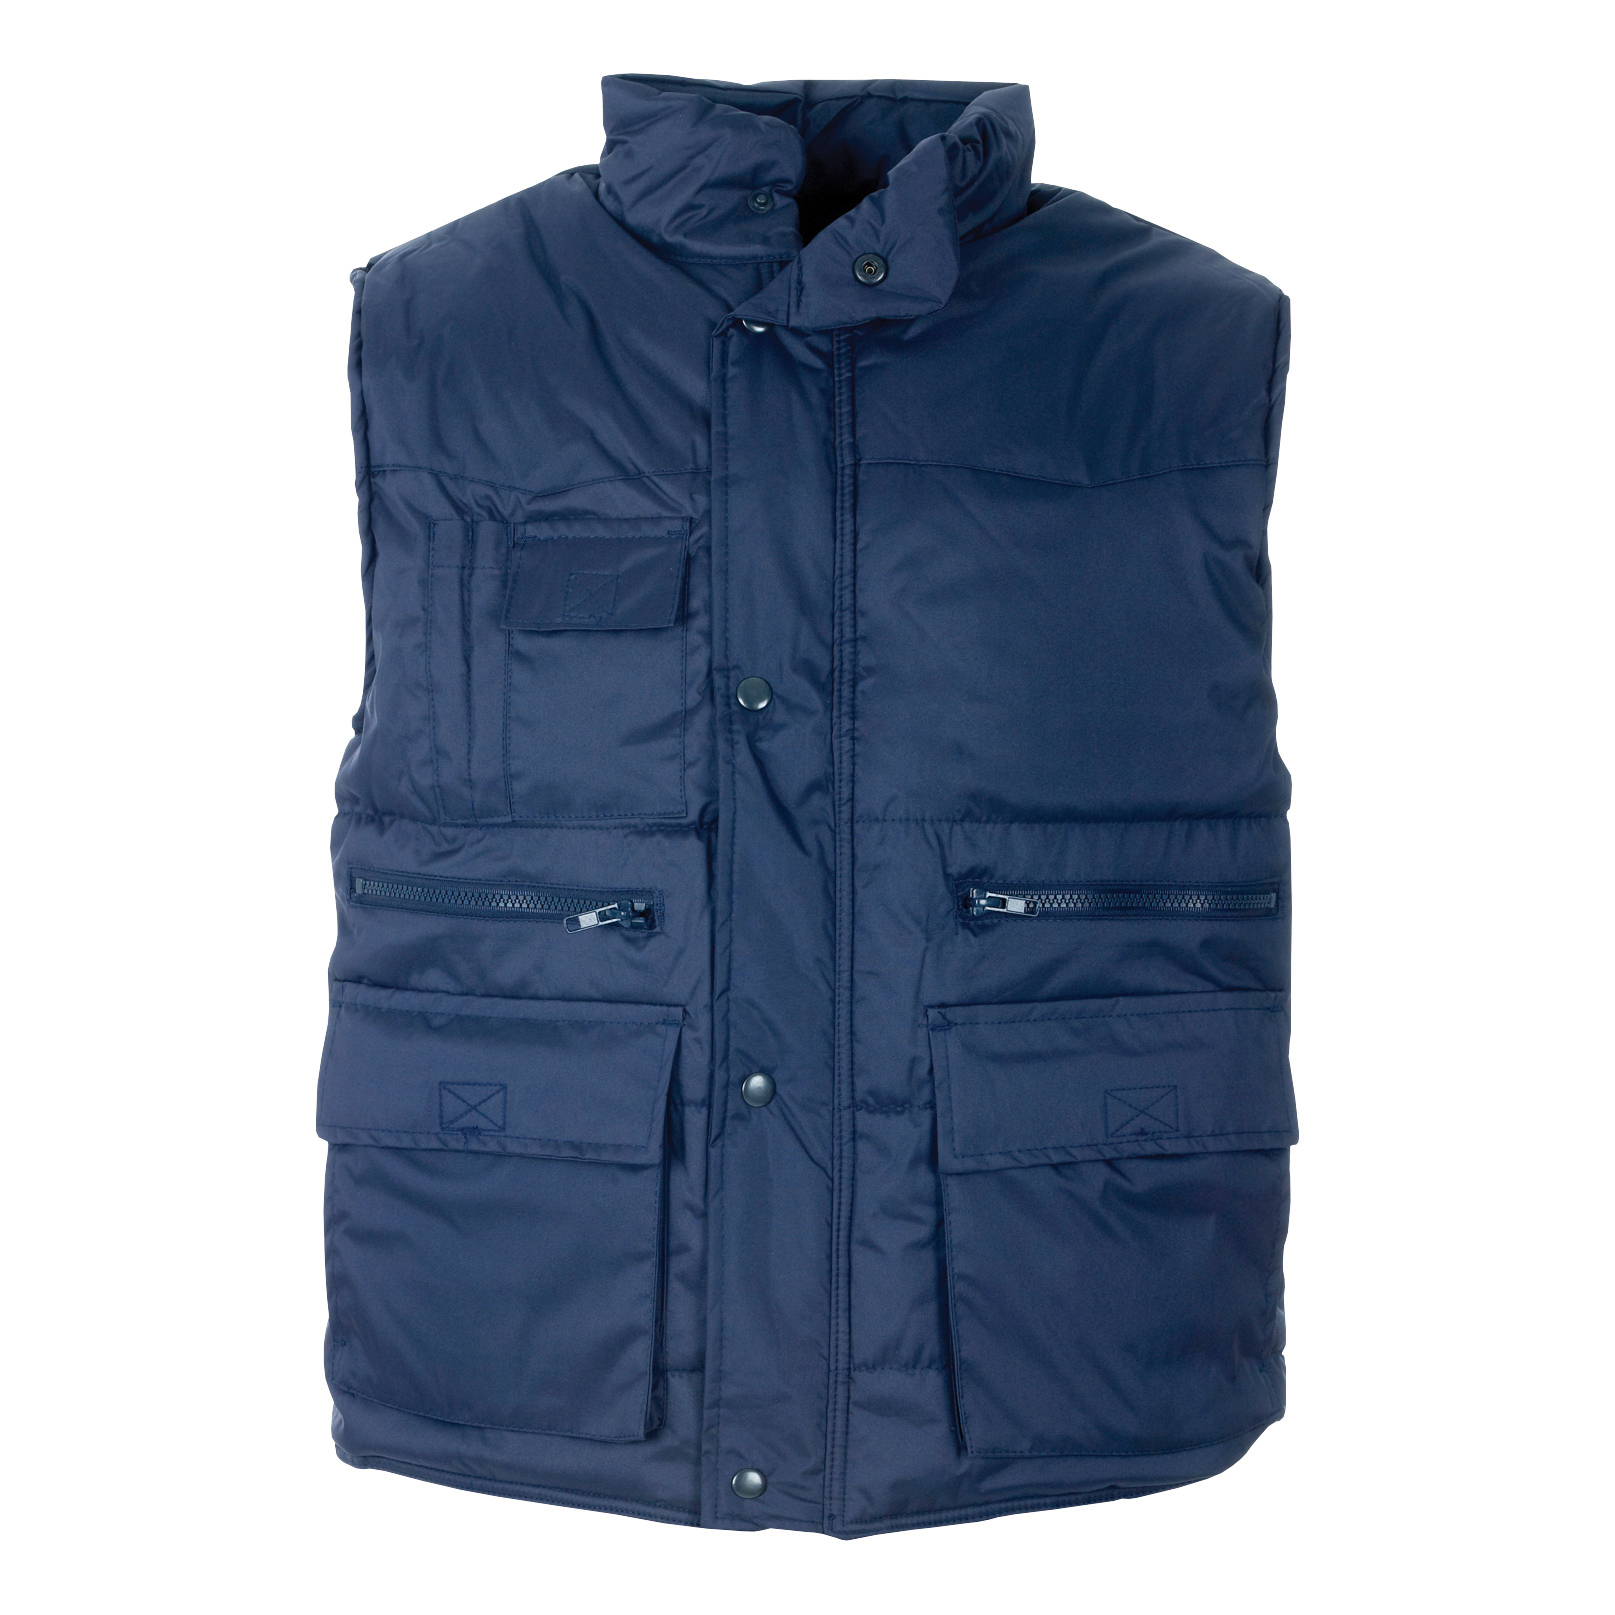 Bodywarmers Body Warmer Polyester with Padding & Multi Pockets Small Navy Ref HBNS *Approx 3 Day Leadtime*